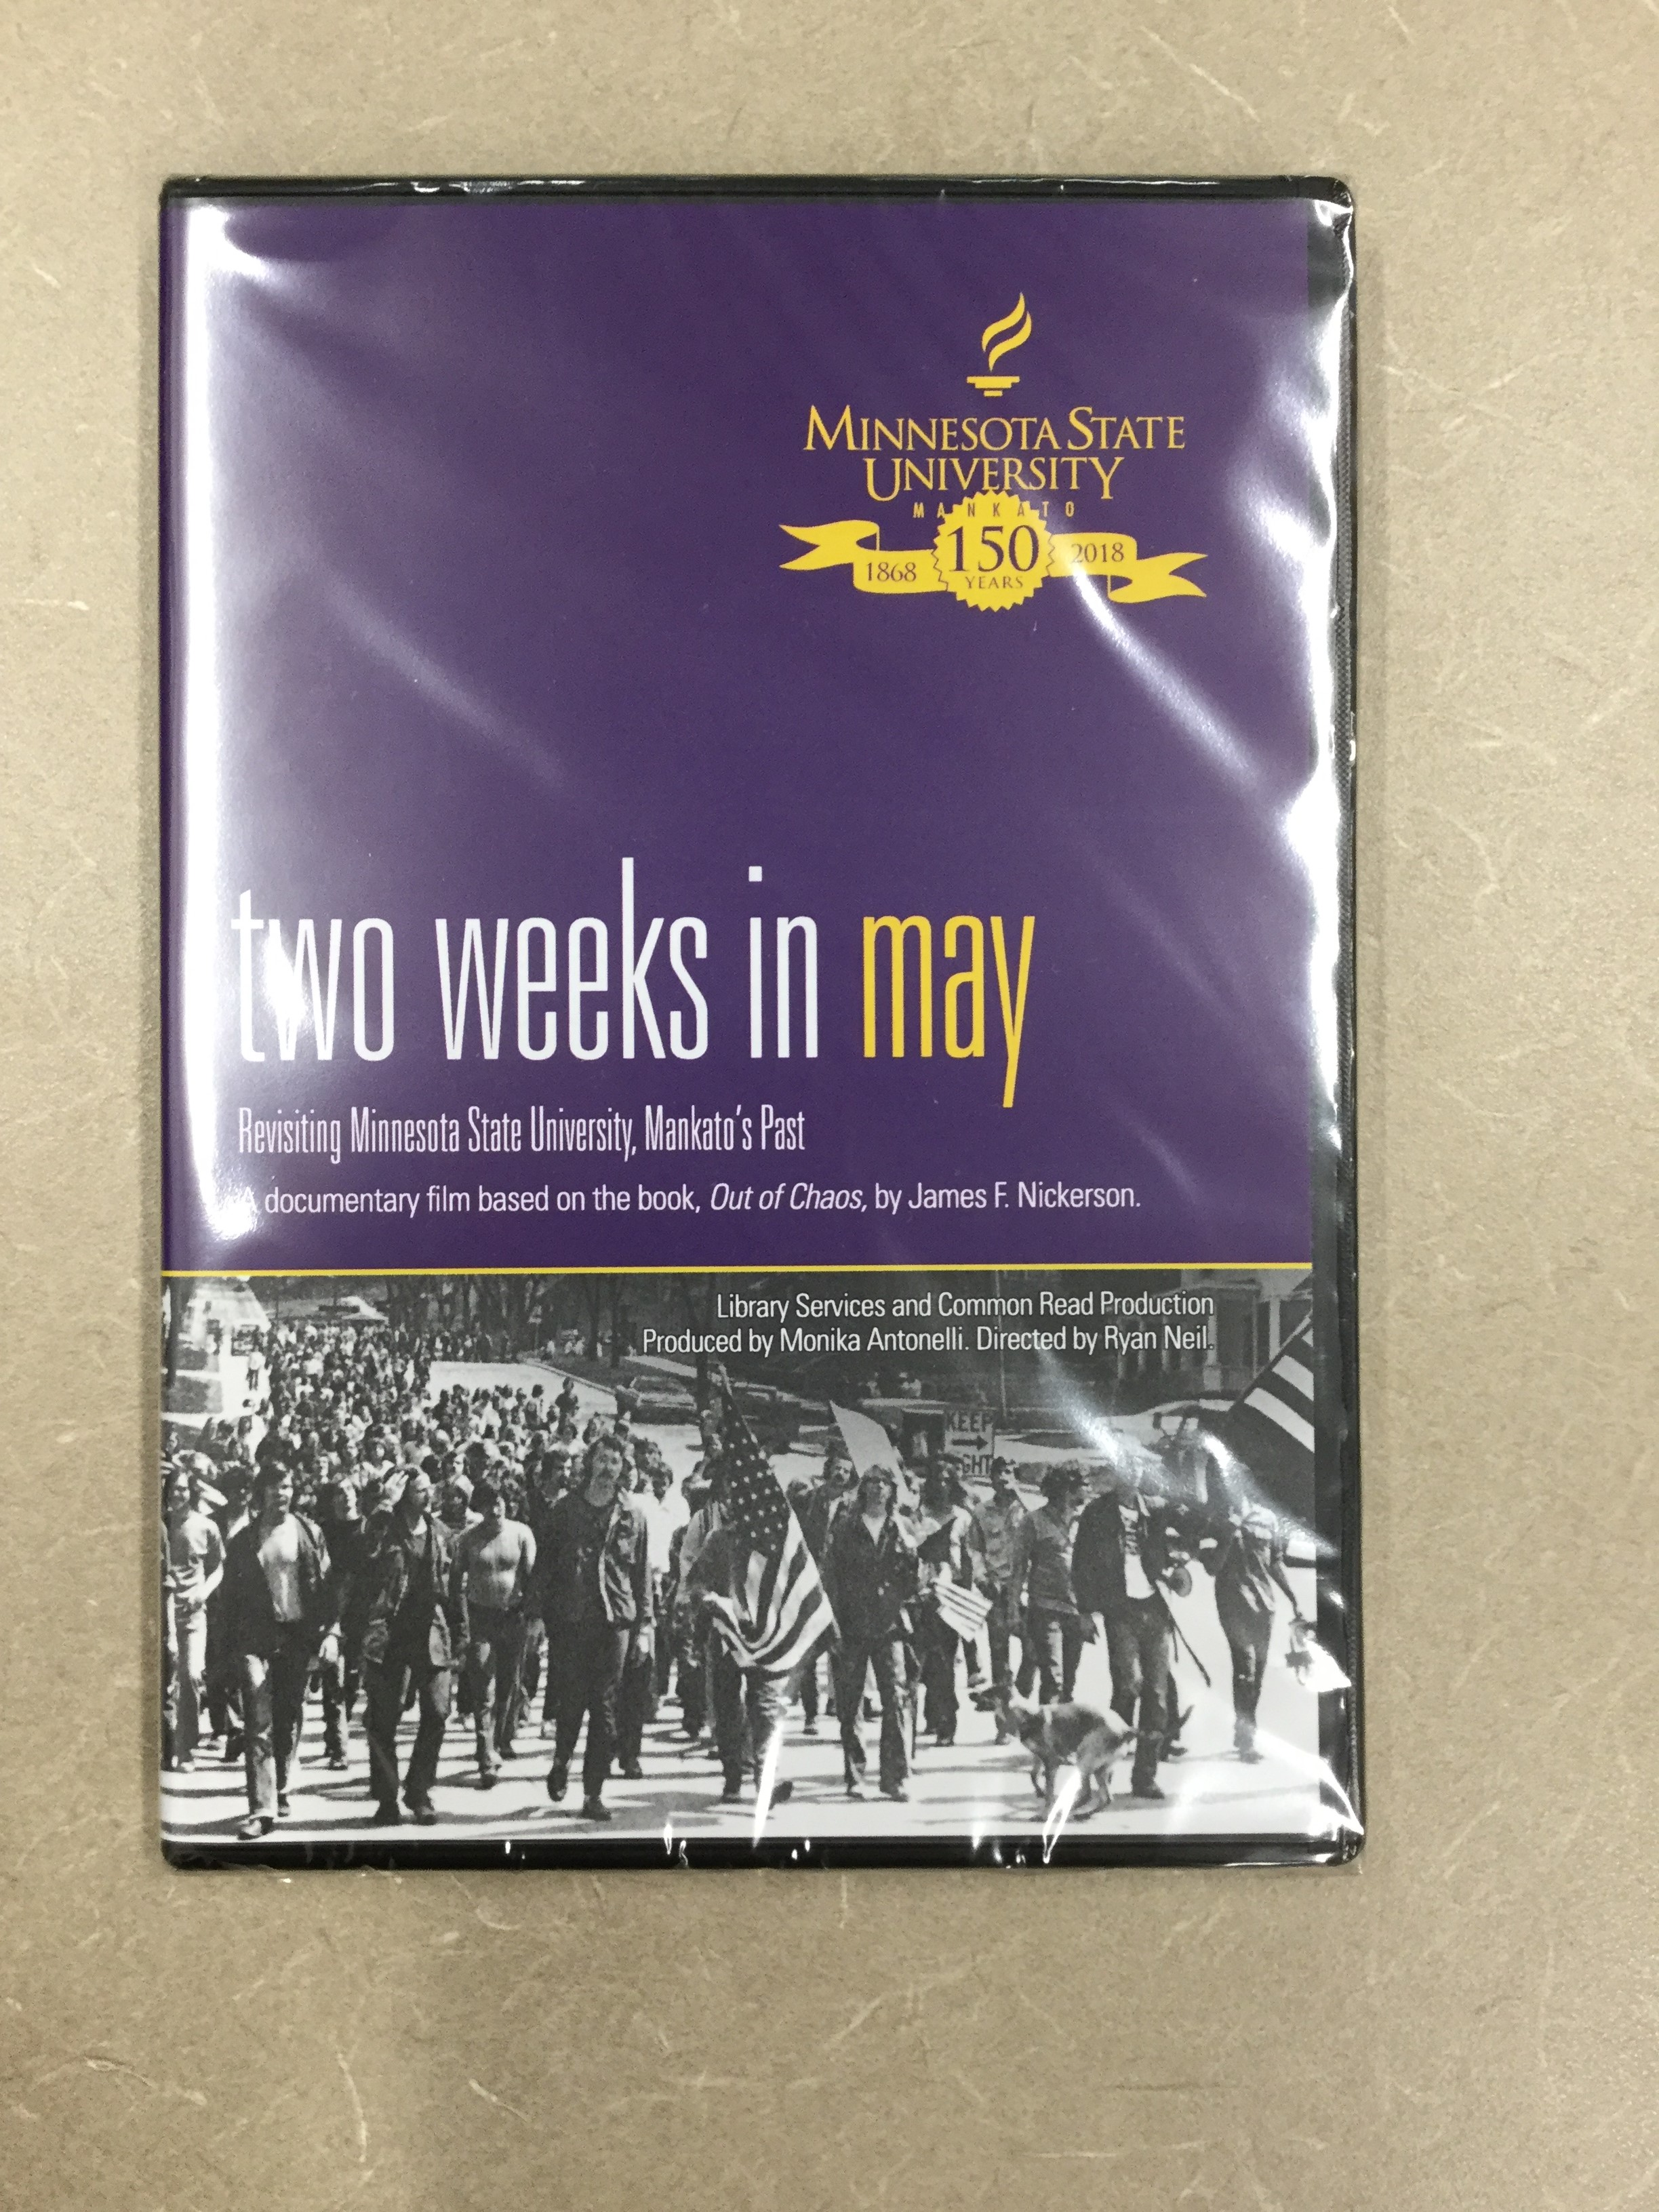 Photo of Two Weeks in May DVD Cover